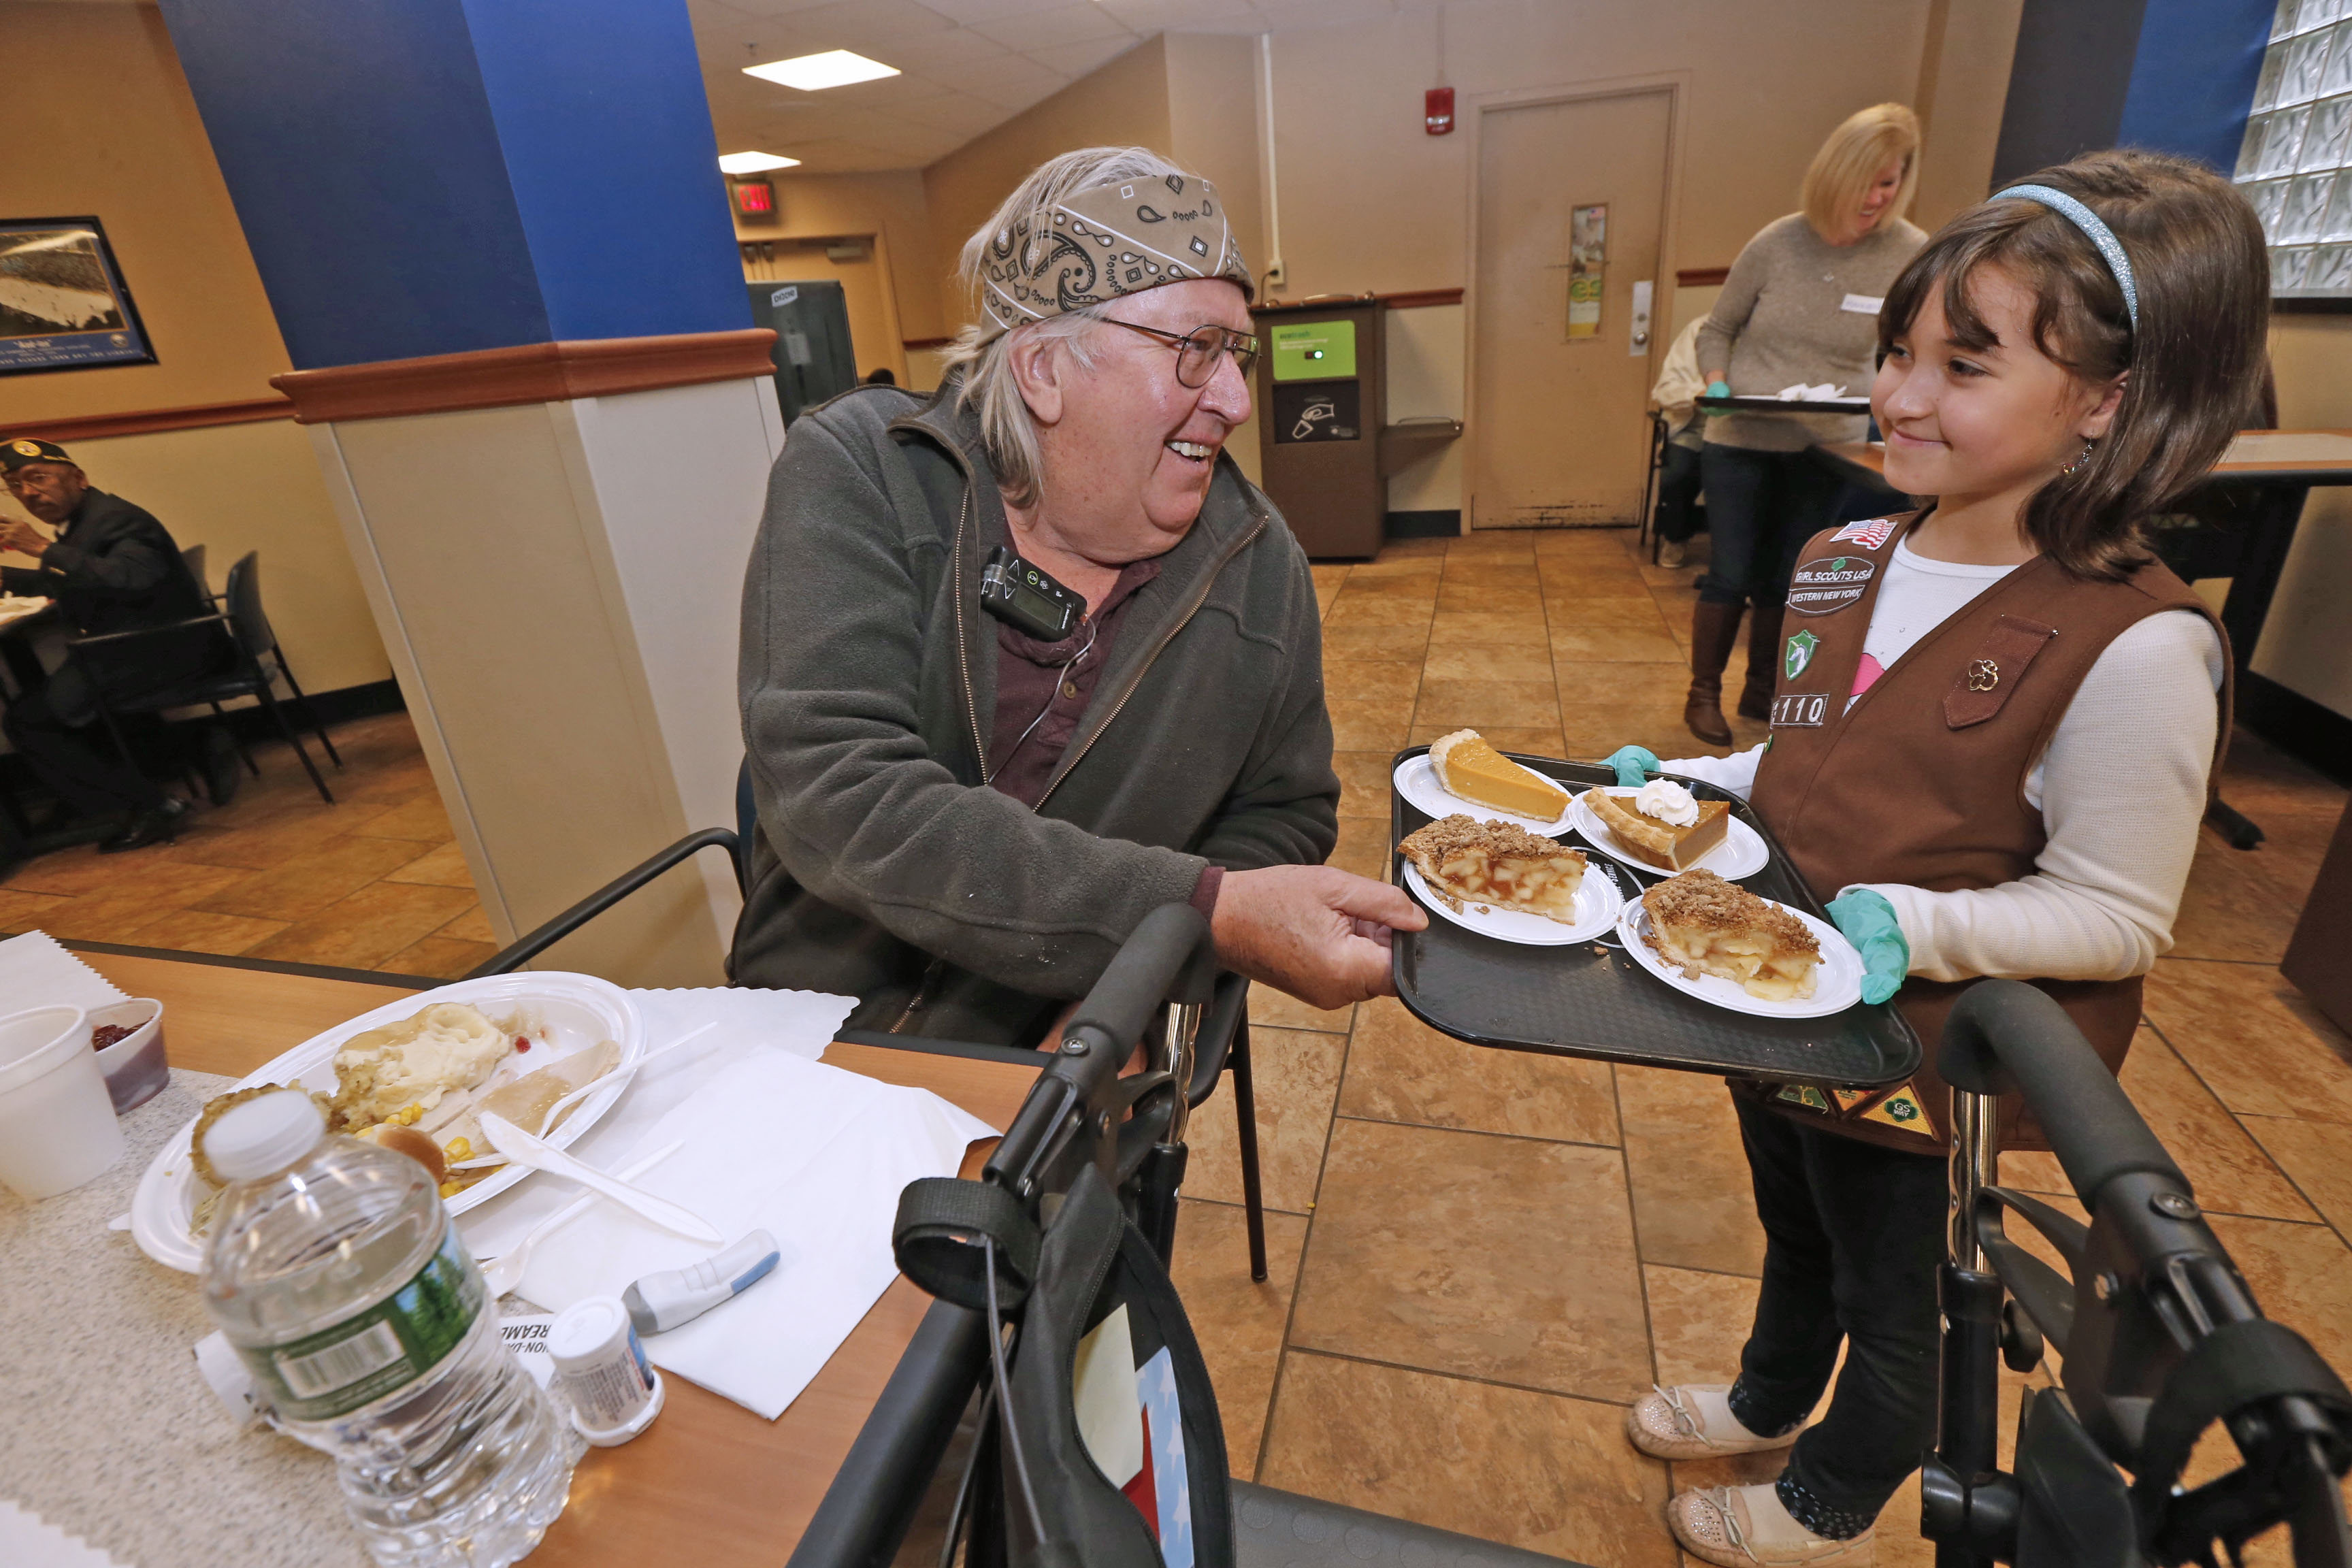 Girl Scout Brownie Sophia Pawlukovich, of Troop 31110, offers Vietnam war veteran Gerald Carrigan of Clarence some pie to go, along with his Thanksgiving dinner in the Patriot Cafe at the Buffalo VA Medical Center Sunday. (Robert Kirkham/Buffalo News)